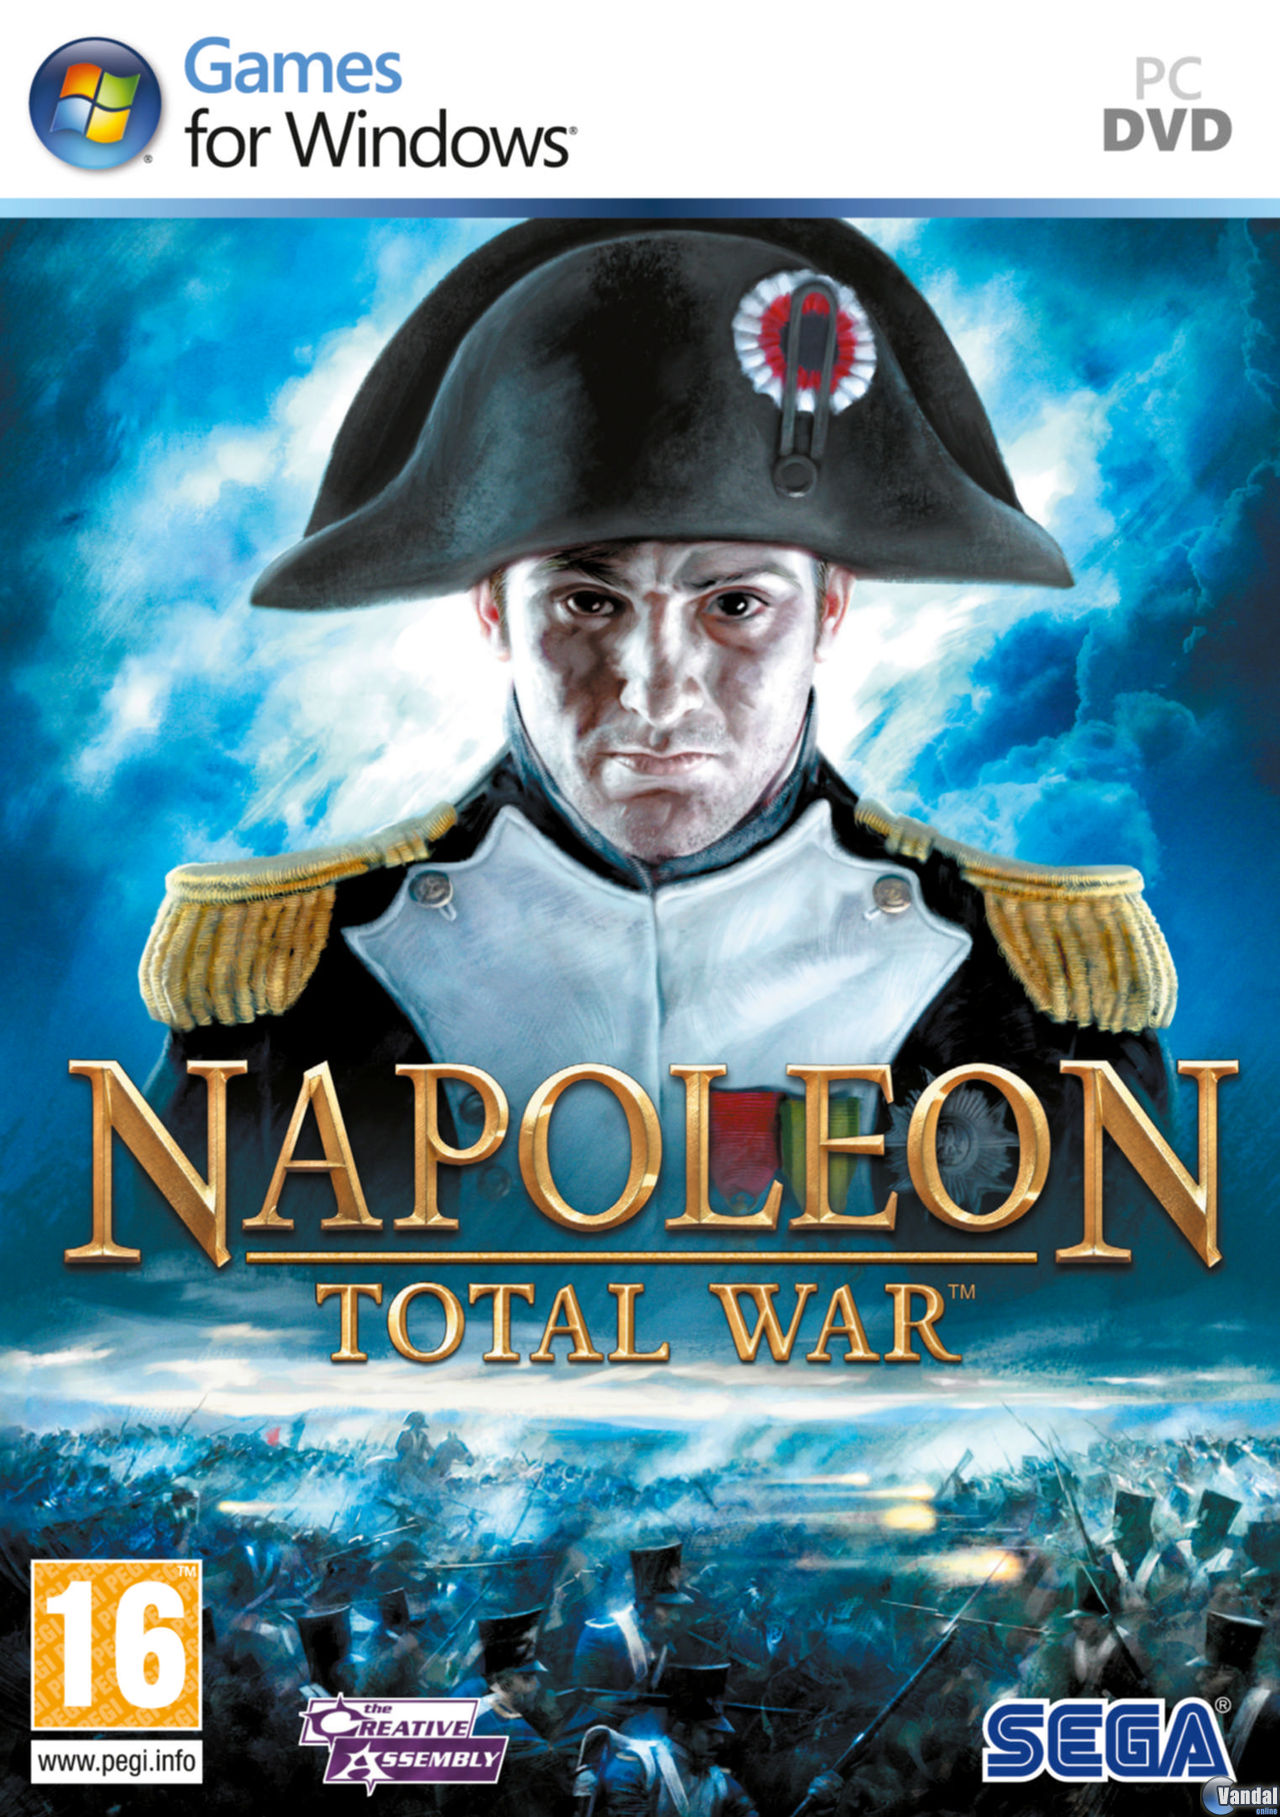 Napoleon: Total War Imperial Edition (2011) RePack